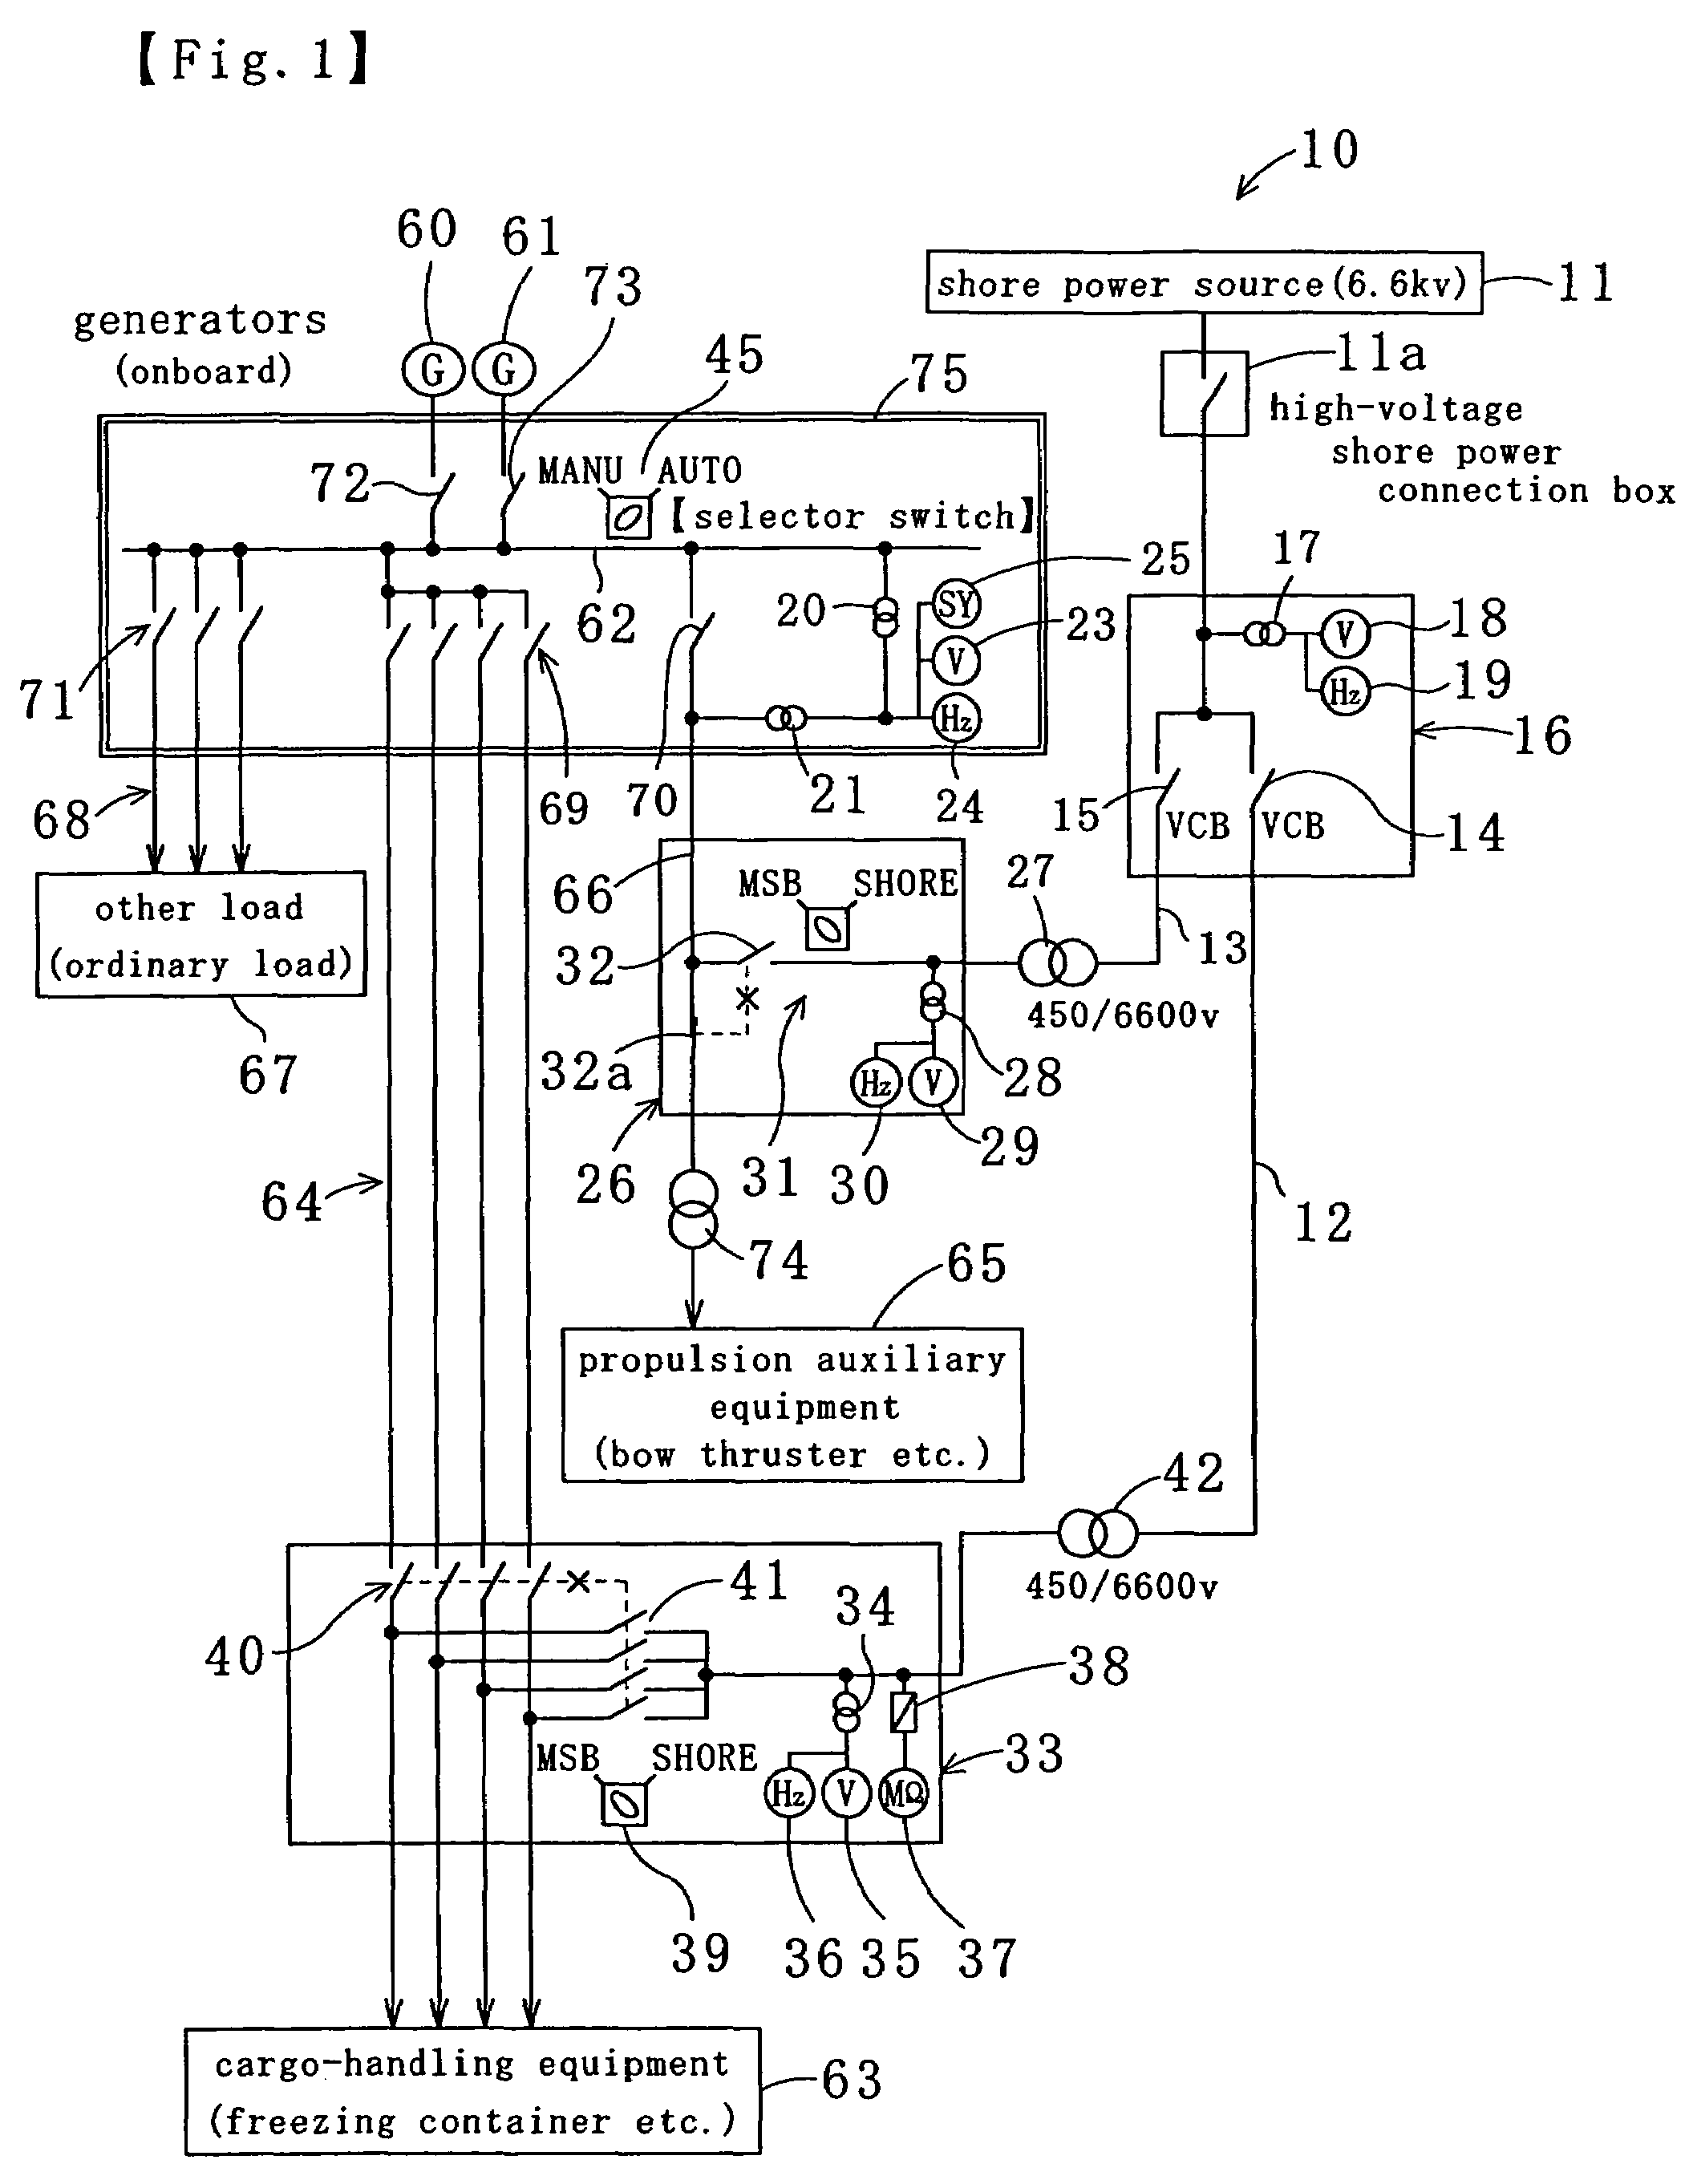 vcb panel wiring diagram vcb image wiring diagram patent us7253538 method of supplying electric power from shore on vcb panel wiring diagram